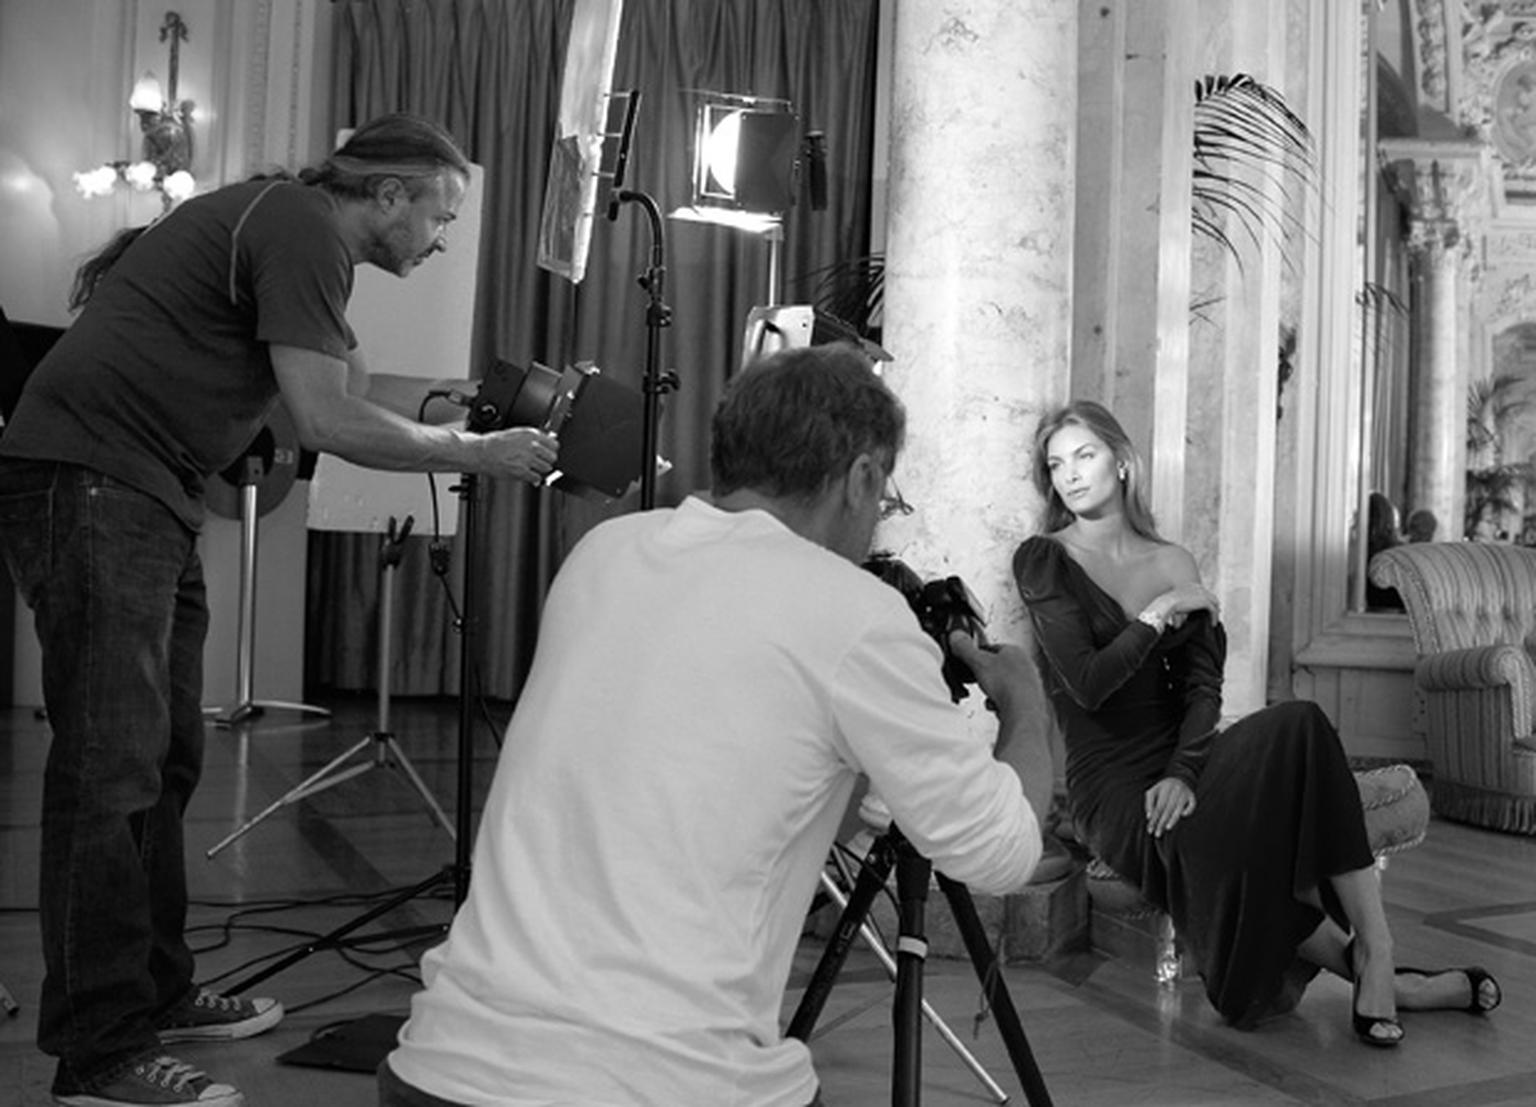 Photographer Christian Coigny and his  team working hard at a natural, spontaneous look